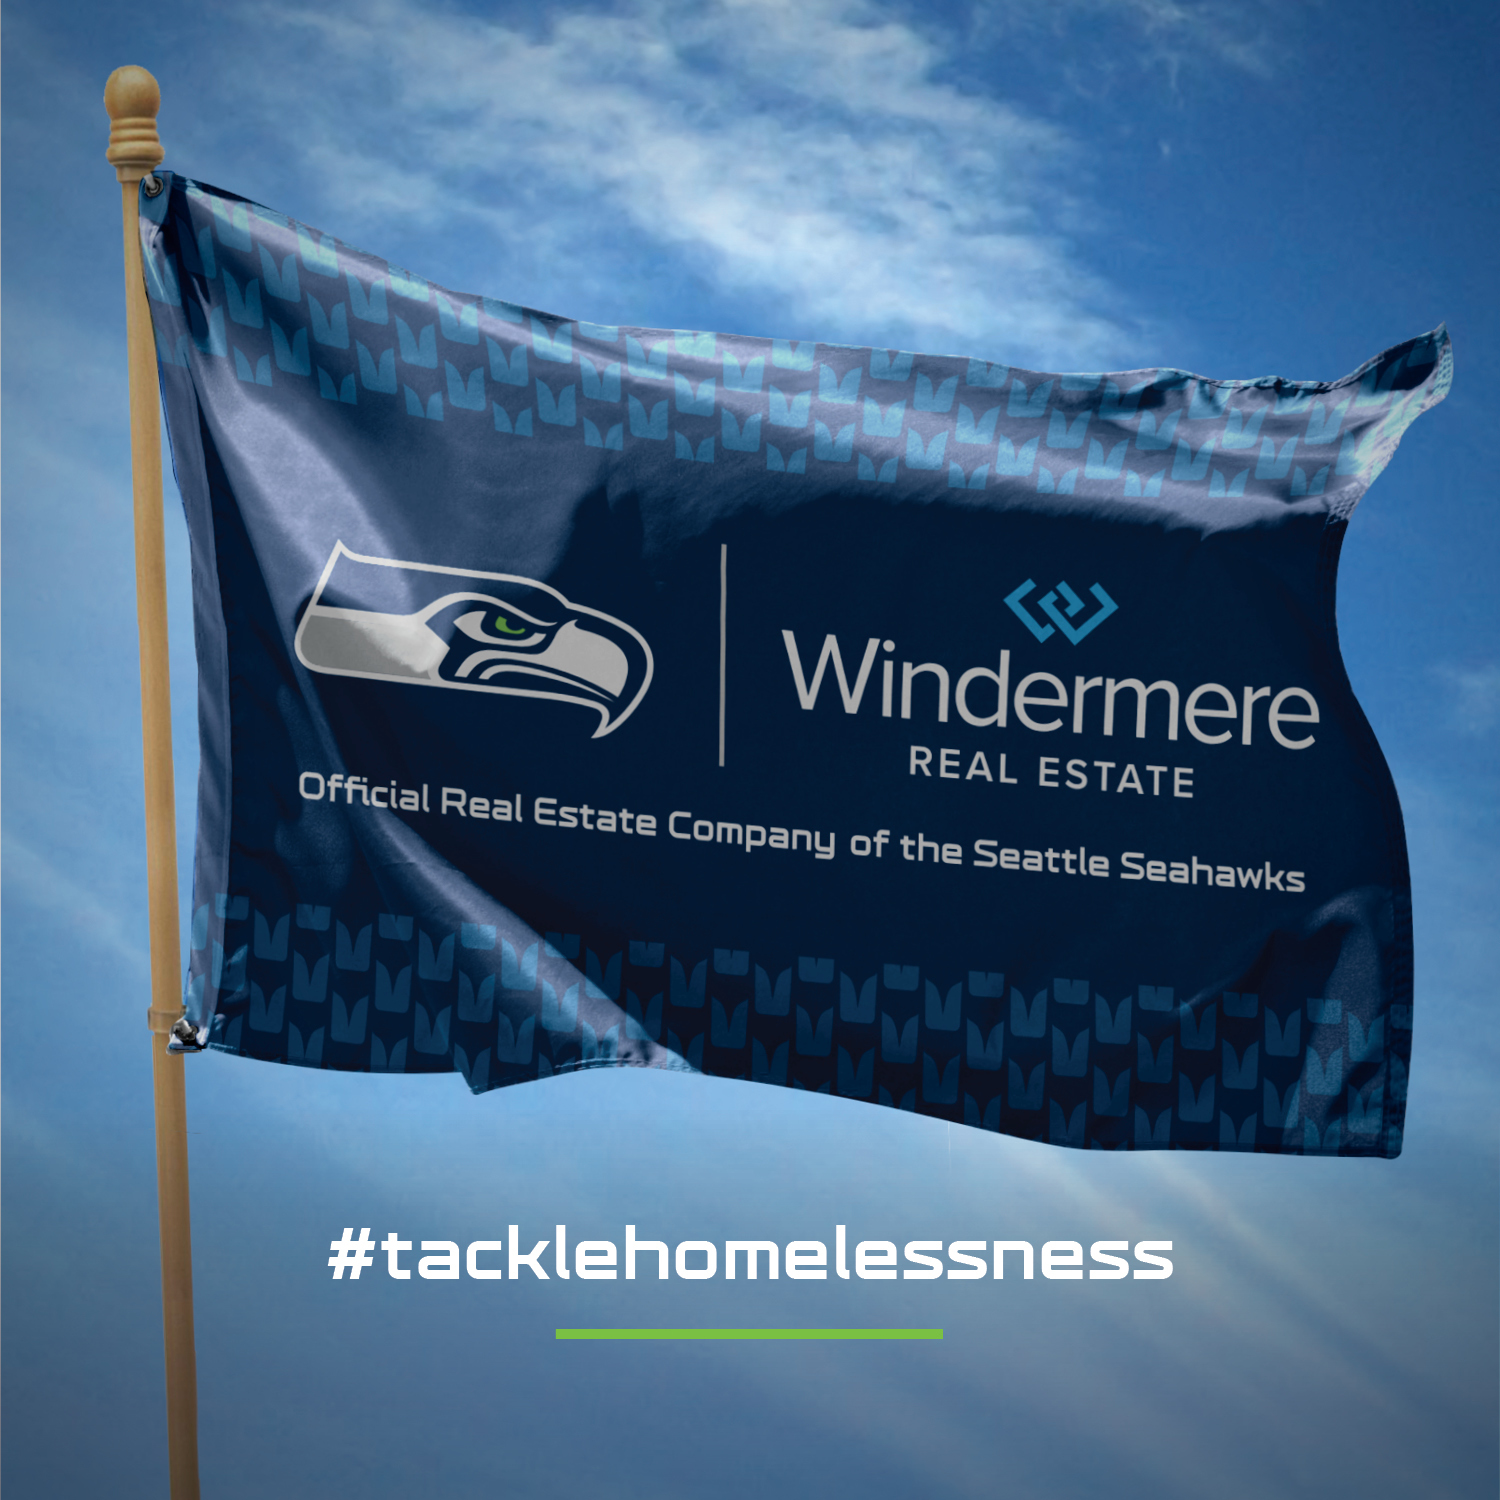 Seahawks Windermere